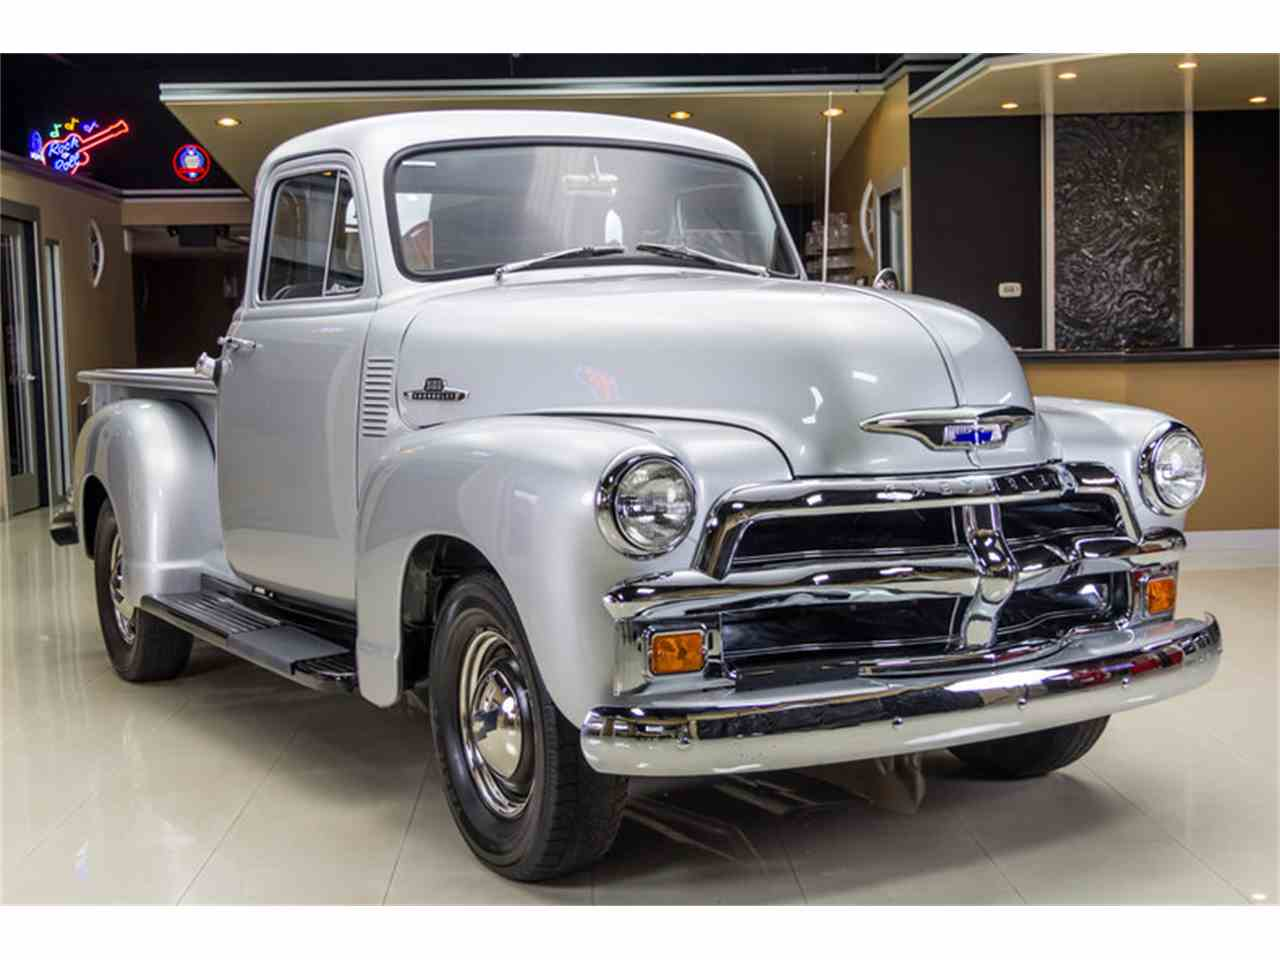 Large Picture of 1955 Chevrolet 3100 5 Window Deluxe Pickup located in Plymouth Michigan - $43,900.00 Offered by Vanguard Motor Sales - JUIZ